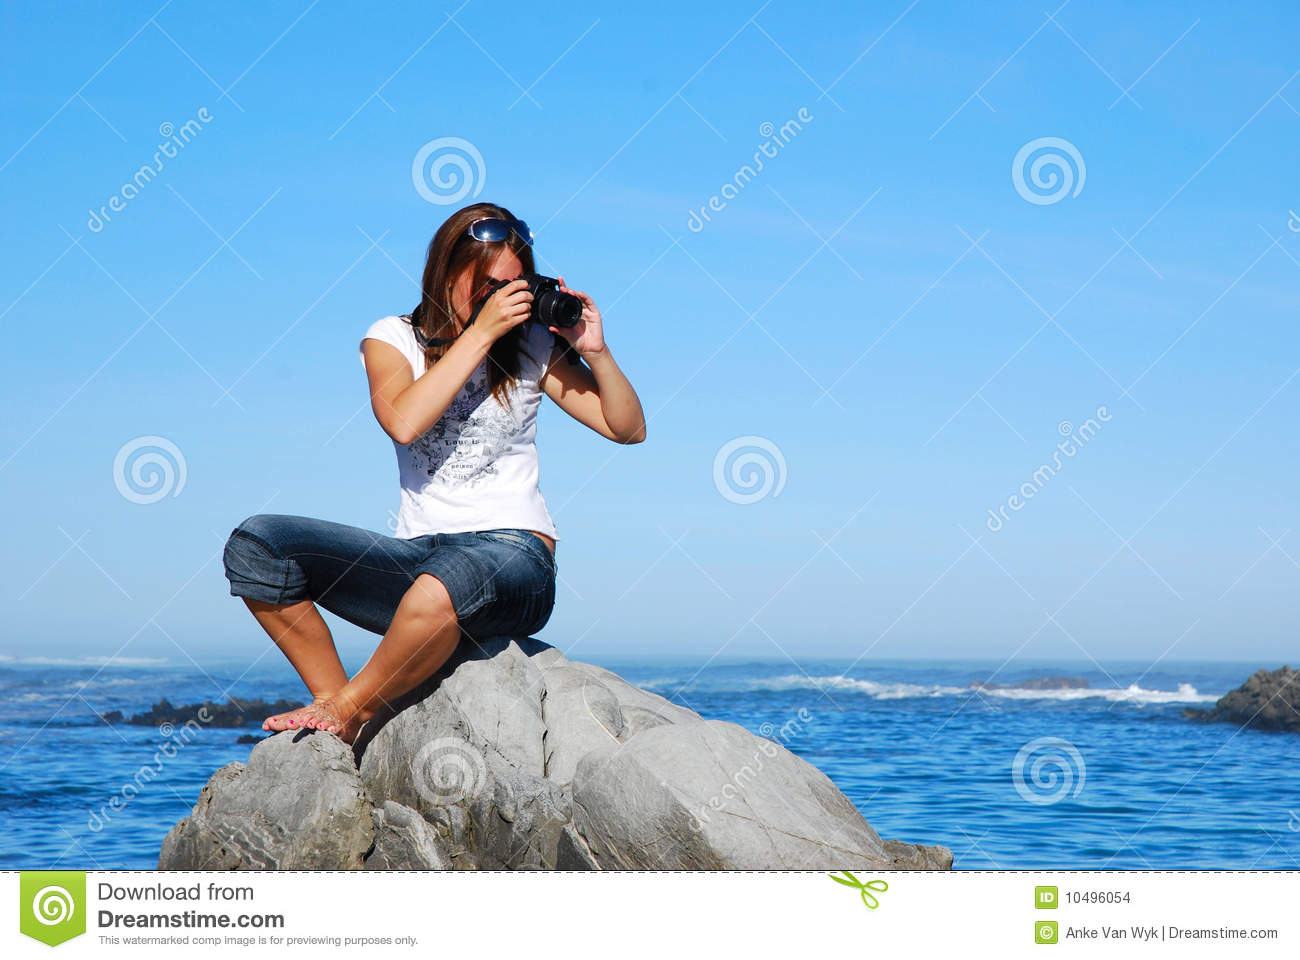 Taking pictures stock photo. Image of takes, photo, nature ...